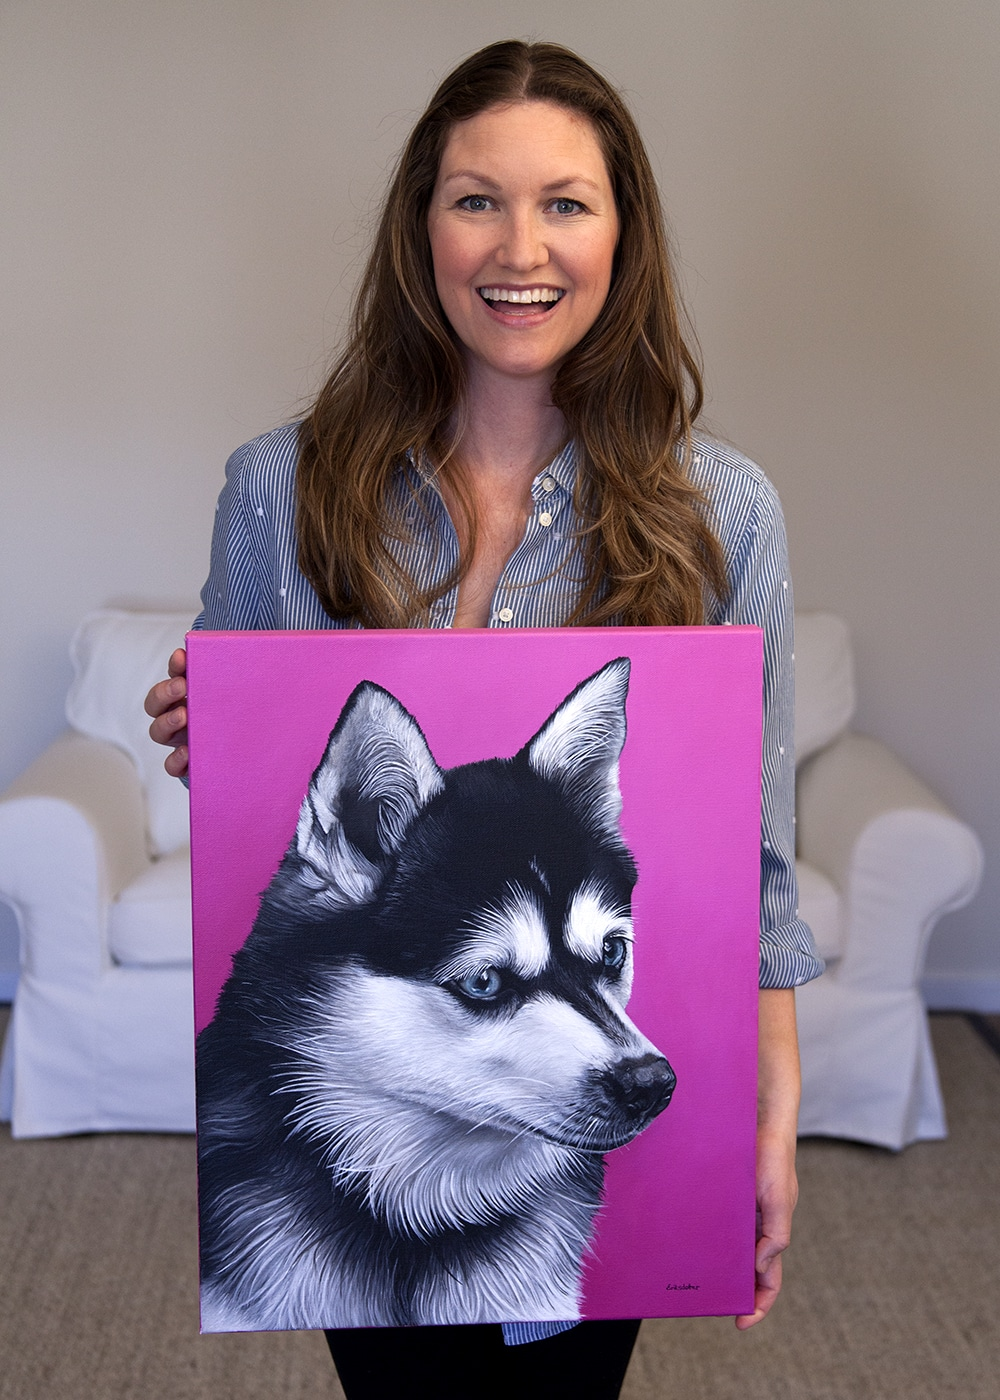 Photo of fine arts painter Erica Eriksdotter holding her custom dog portrait of an Alaskan Klee Kai